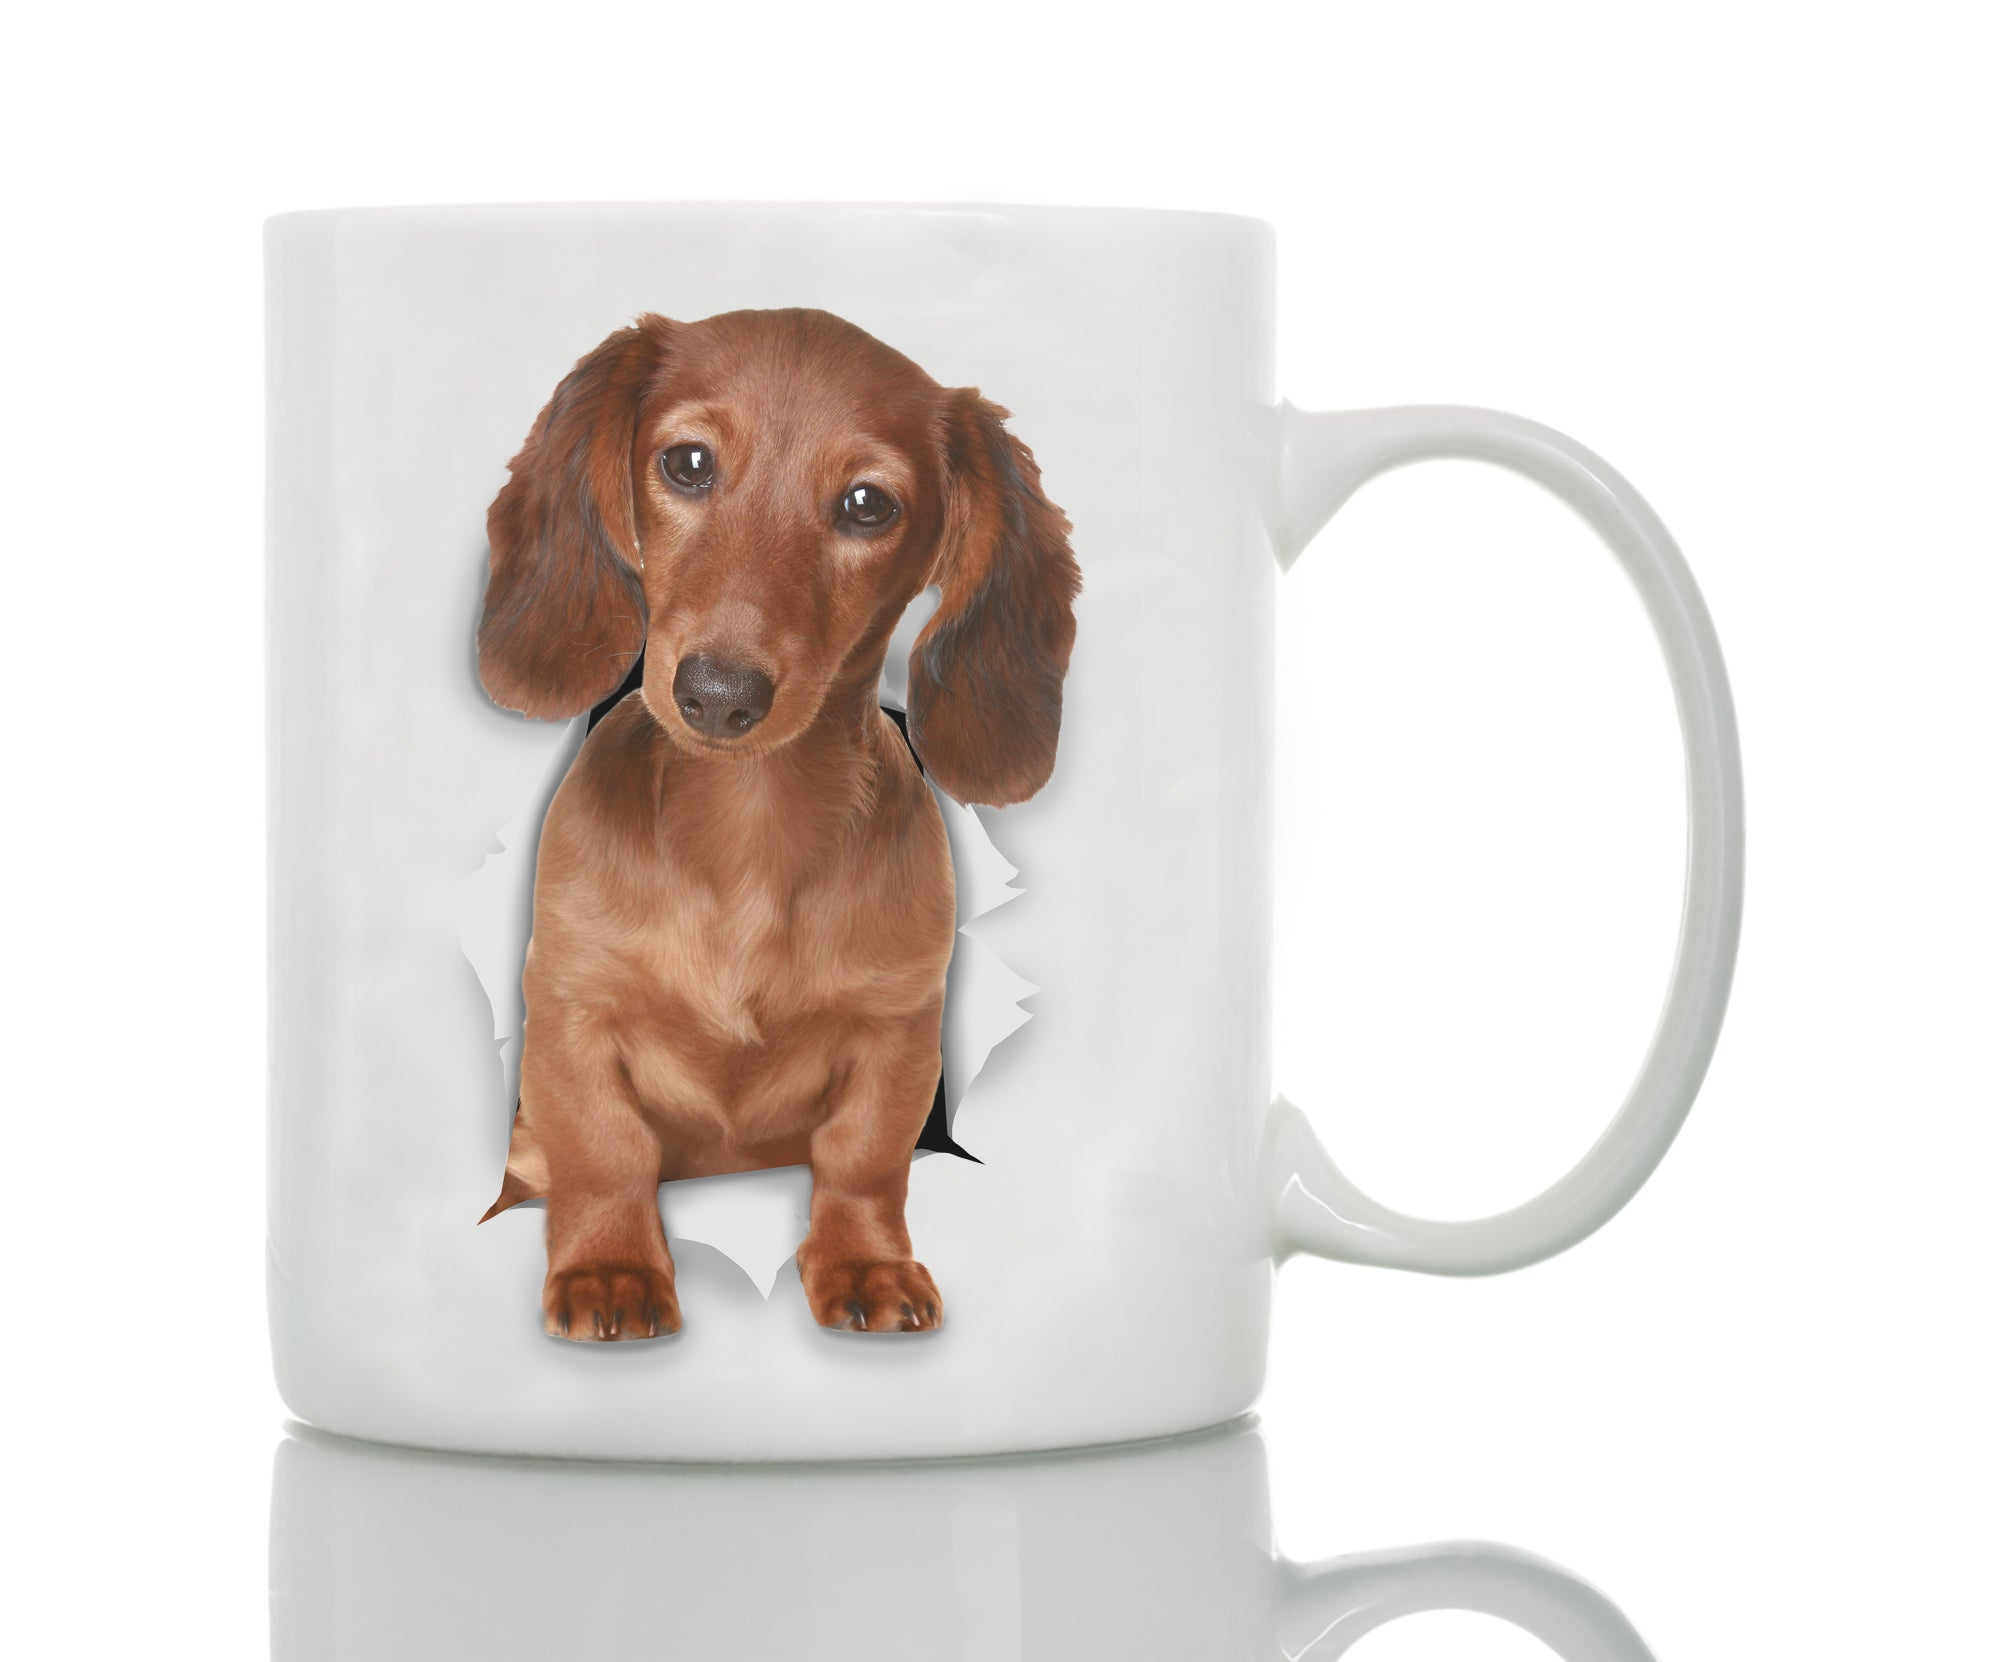 Adorable Dachshund Mug